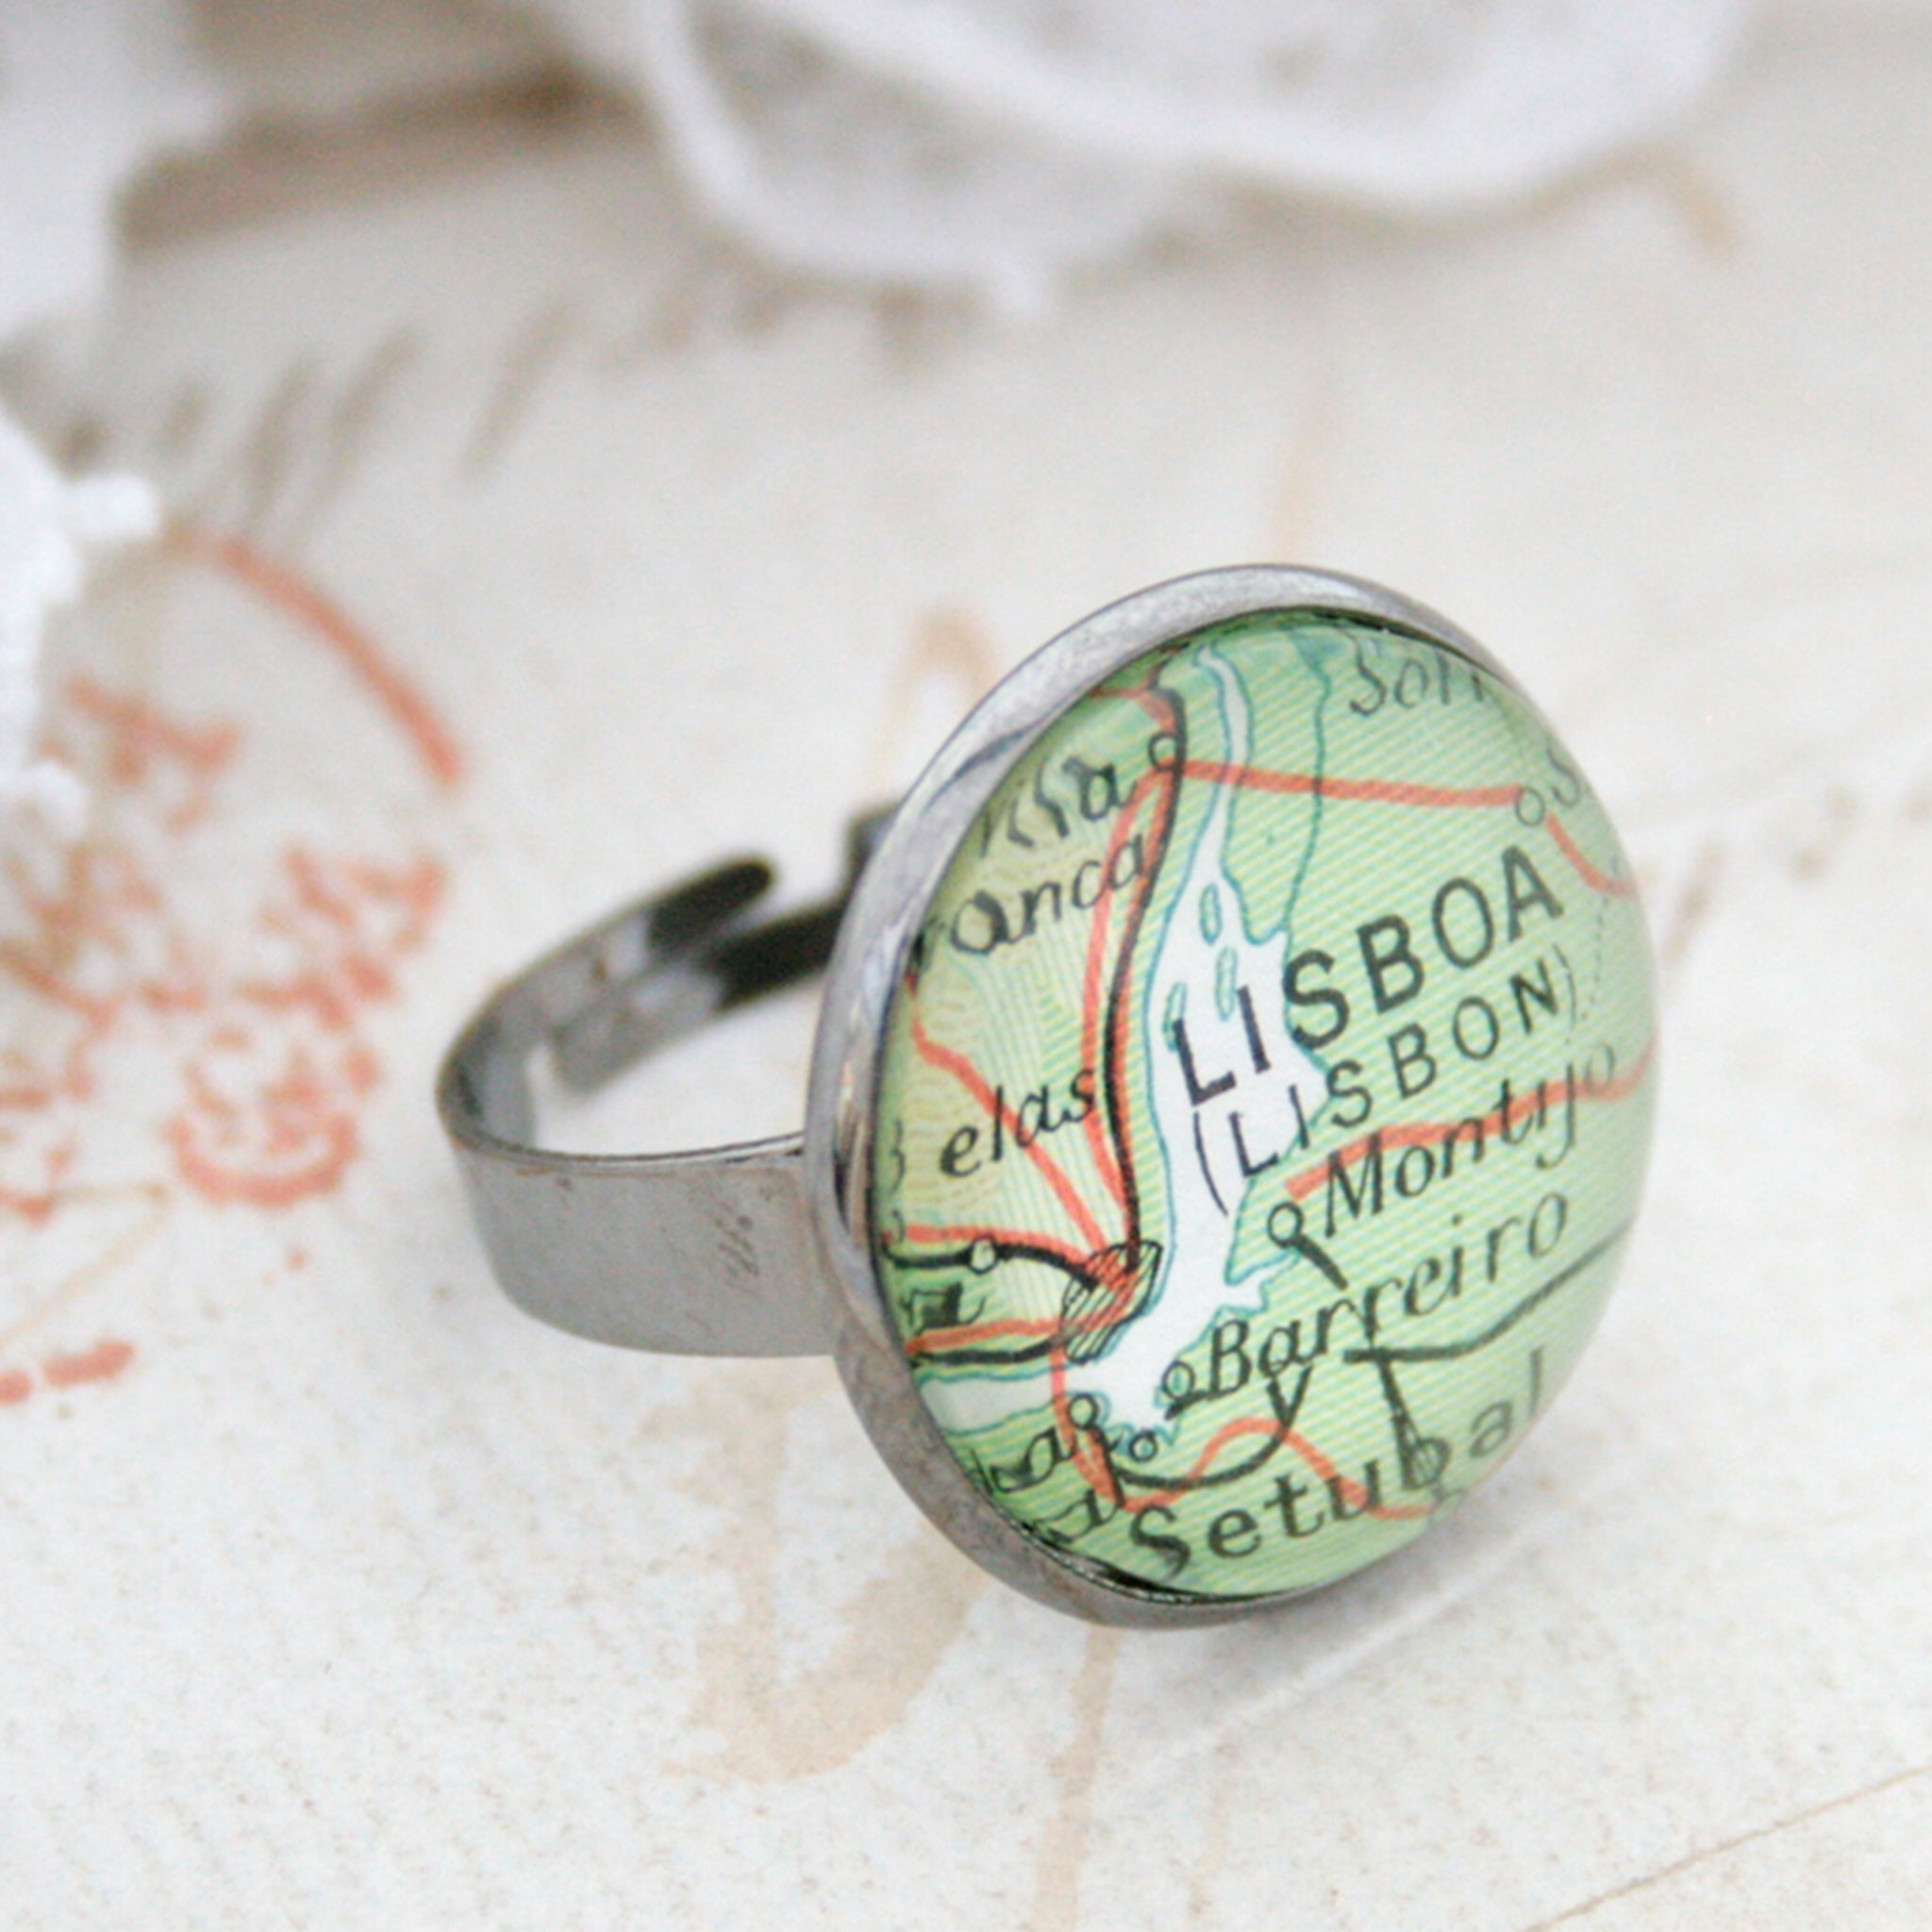 Gunmetal black ring featuring map of Lisboa